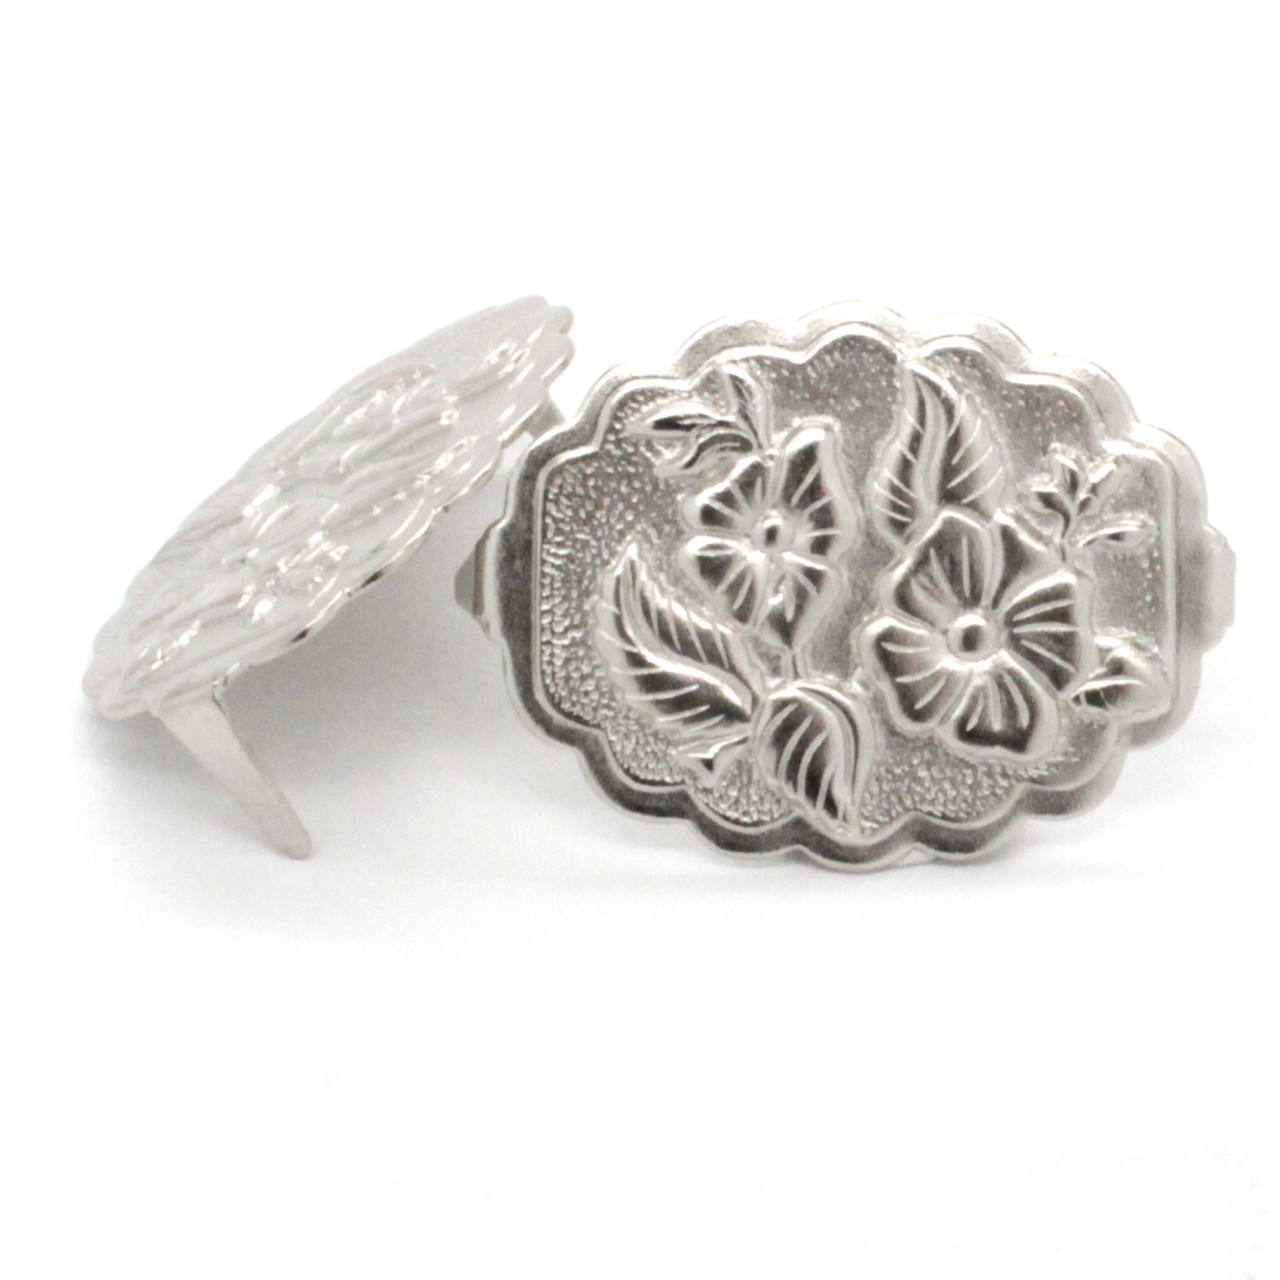 Santa Fe with Dual Cactus Flower Silver Plate Spots